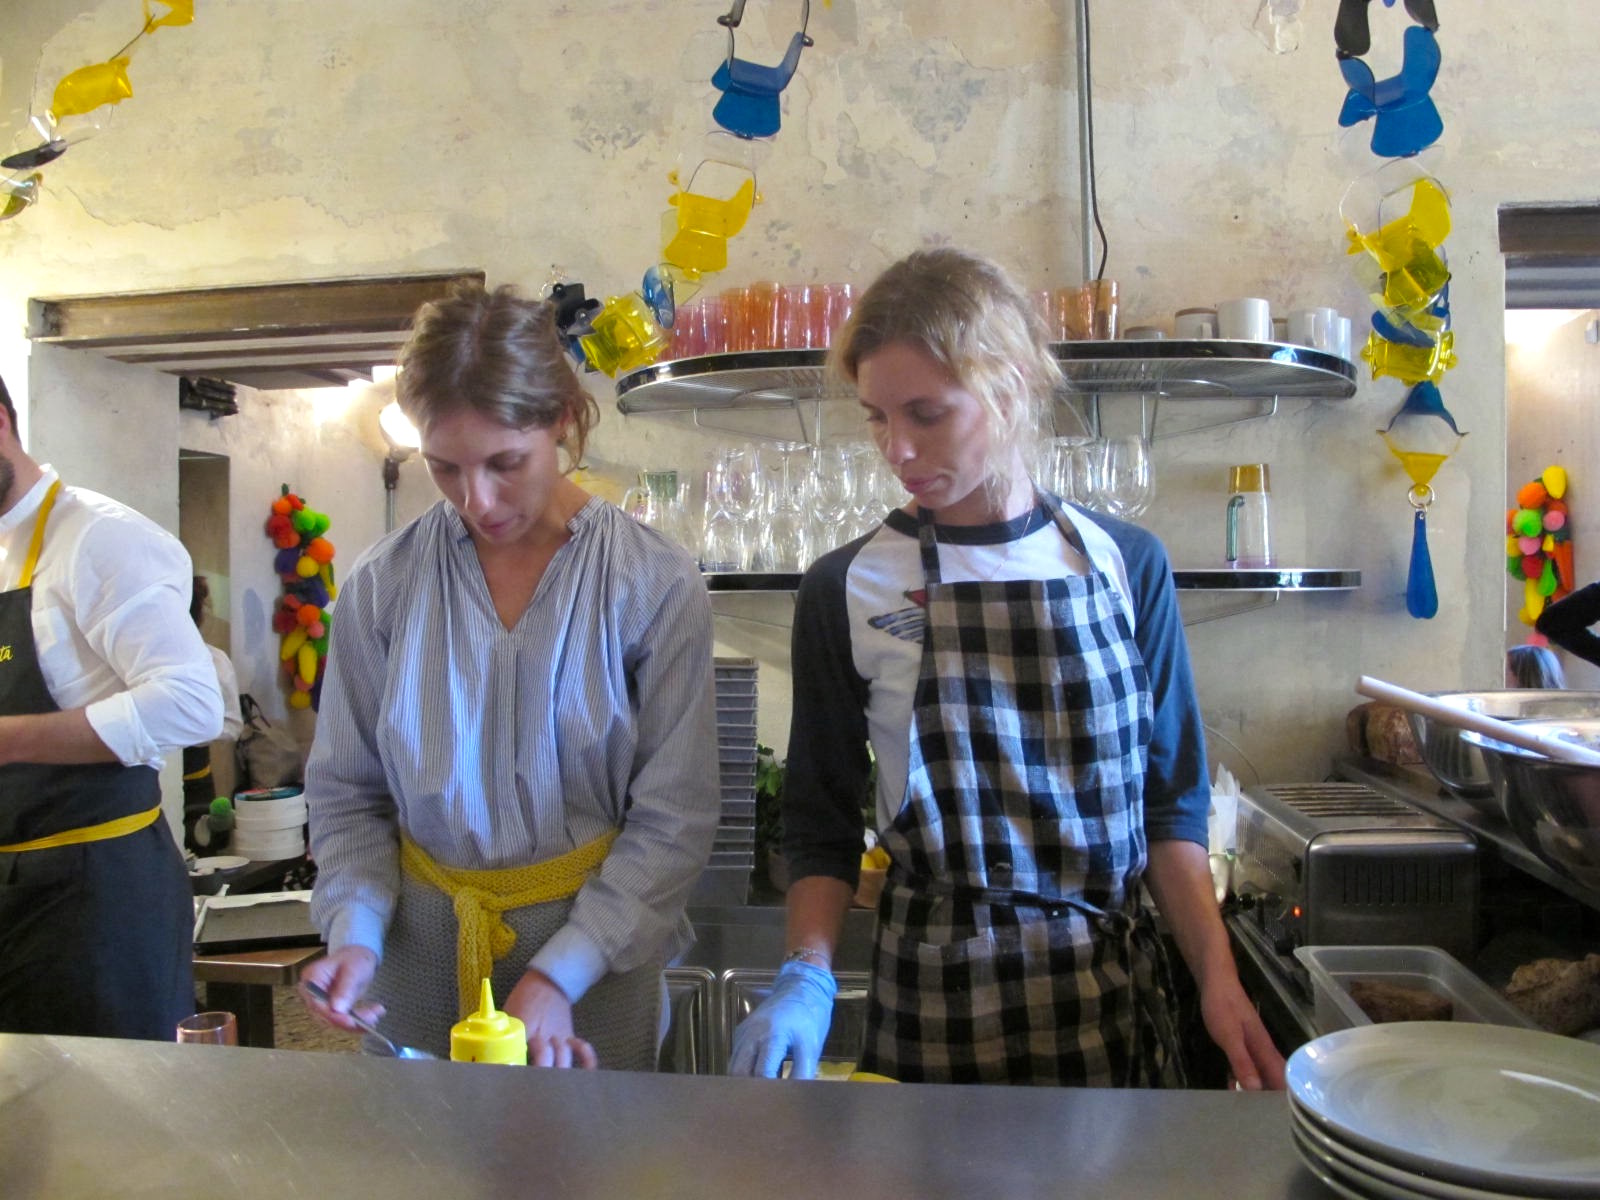 Carter and Harry Were, Australian maker and baker twins, preparing breakfast.